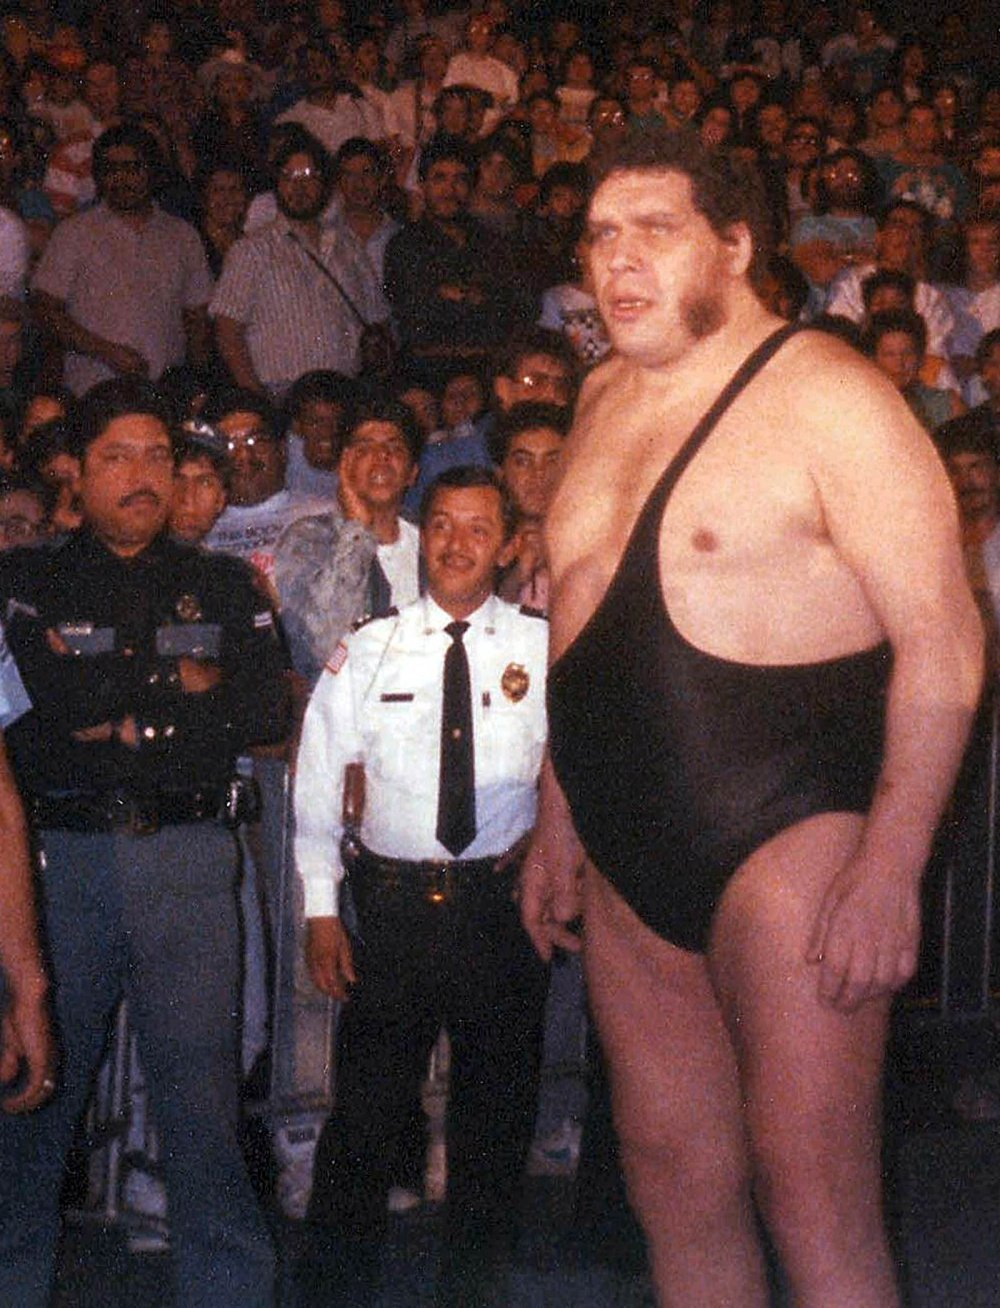 André_the_Giant_in_the_late_'80s.jpg